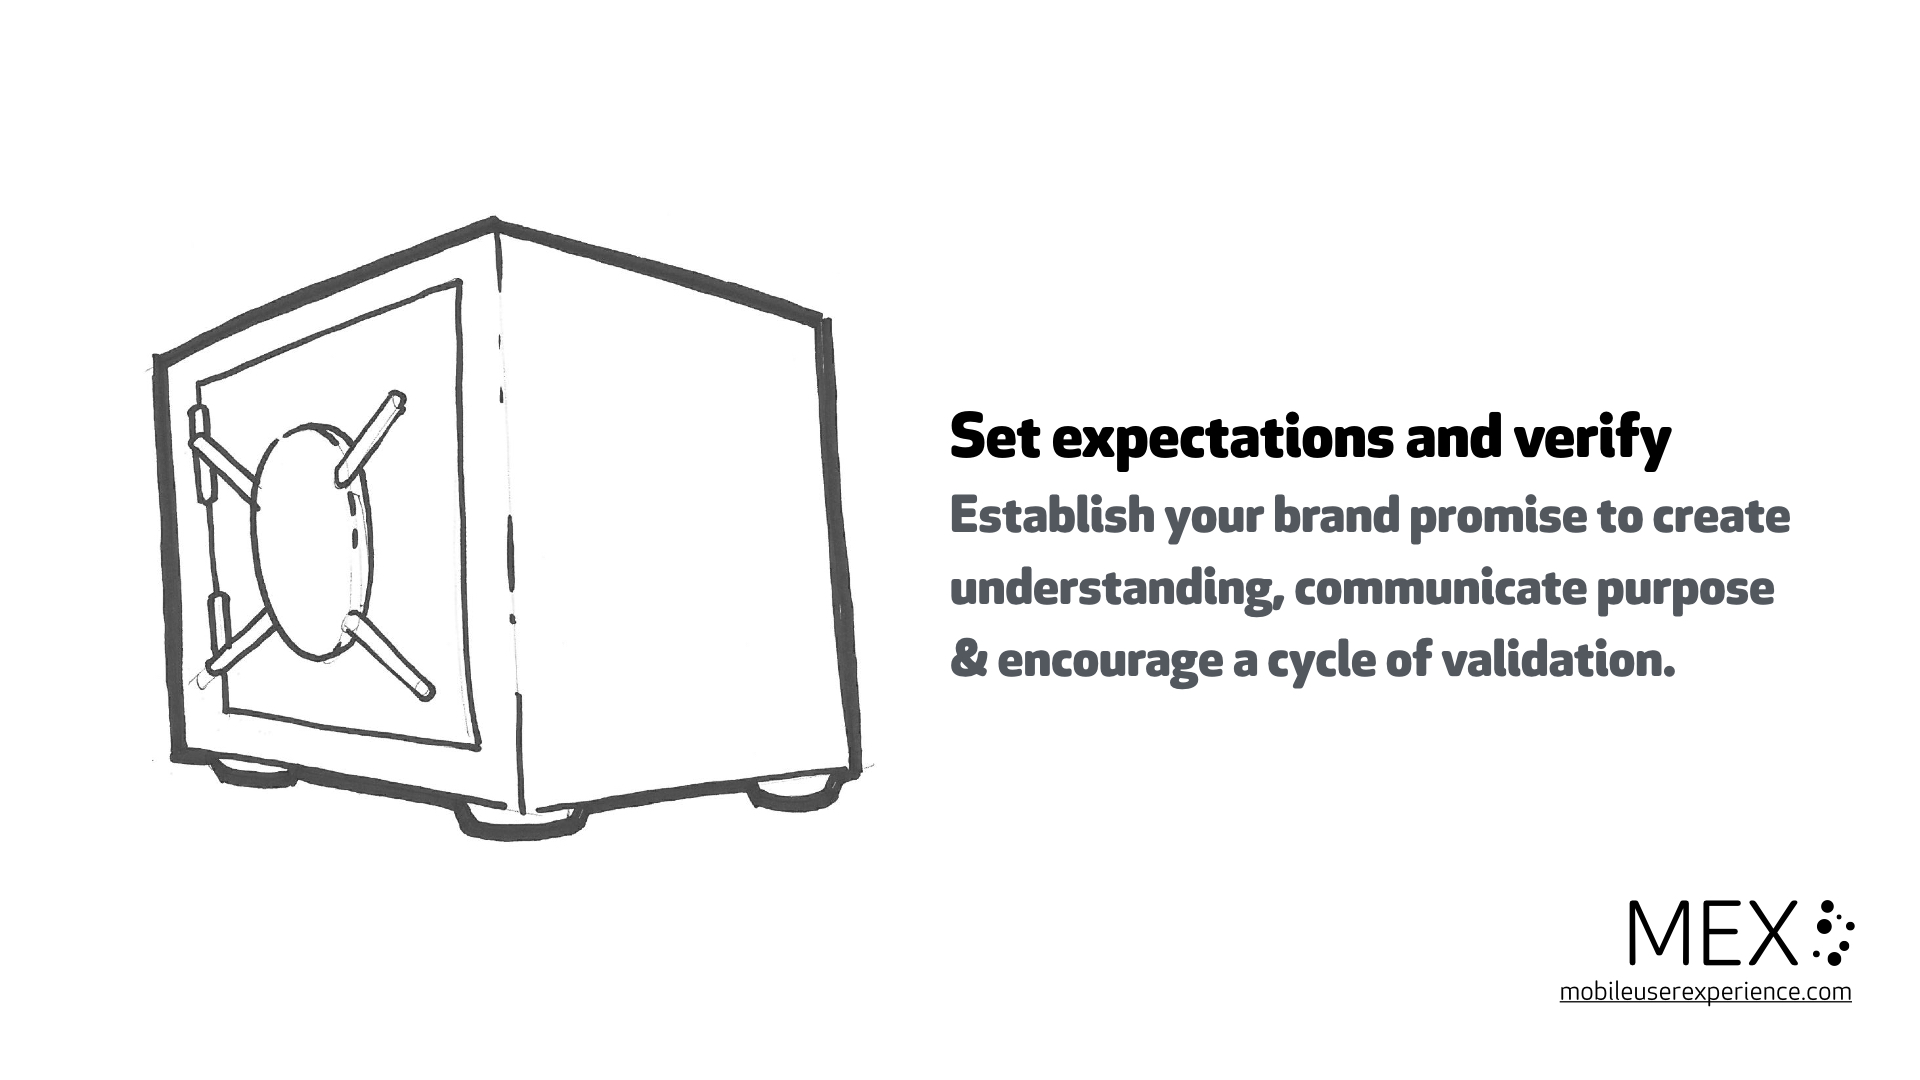 Set expectations and verify Establish your brand promise to create understanding, communicate purpose & encourage a cycle of validation.